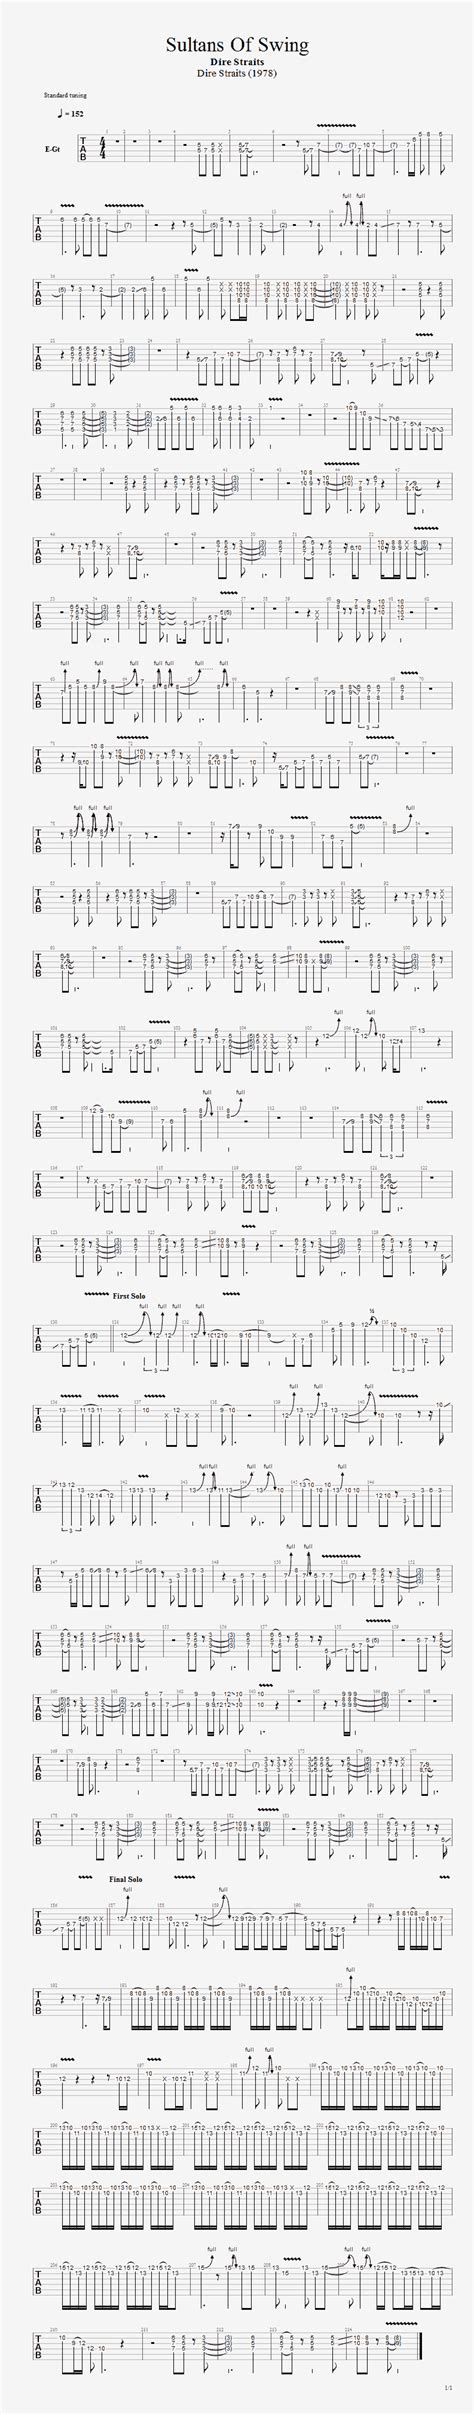 sultans of swing guitar sultans of swing guitar tab guitarnick